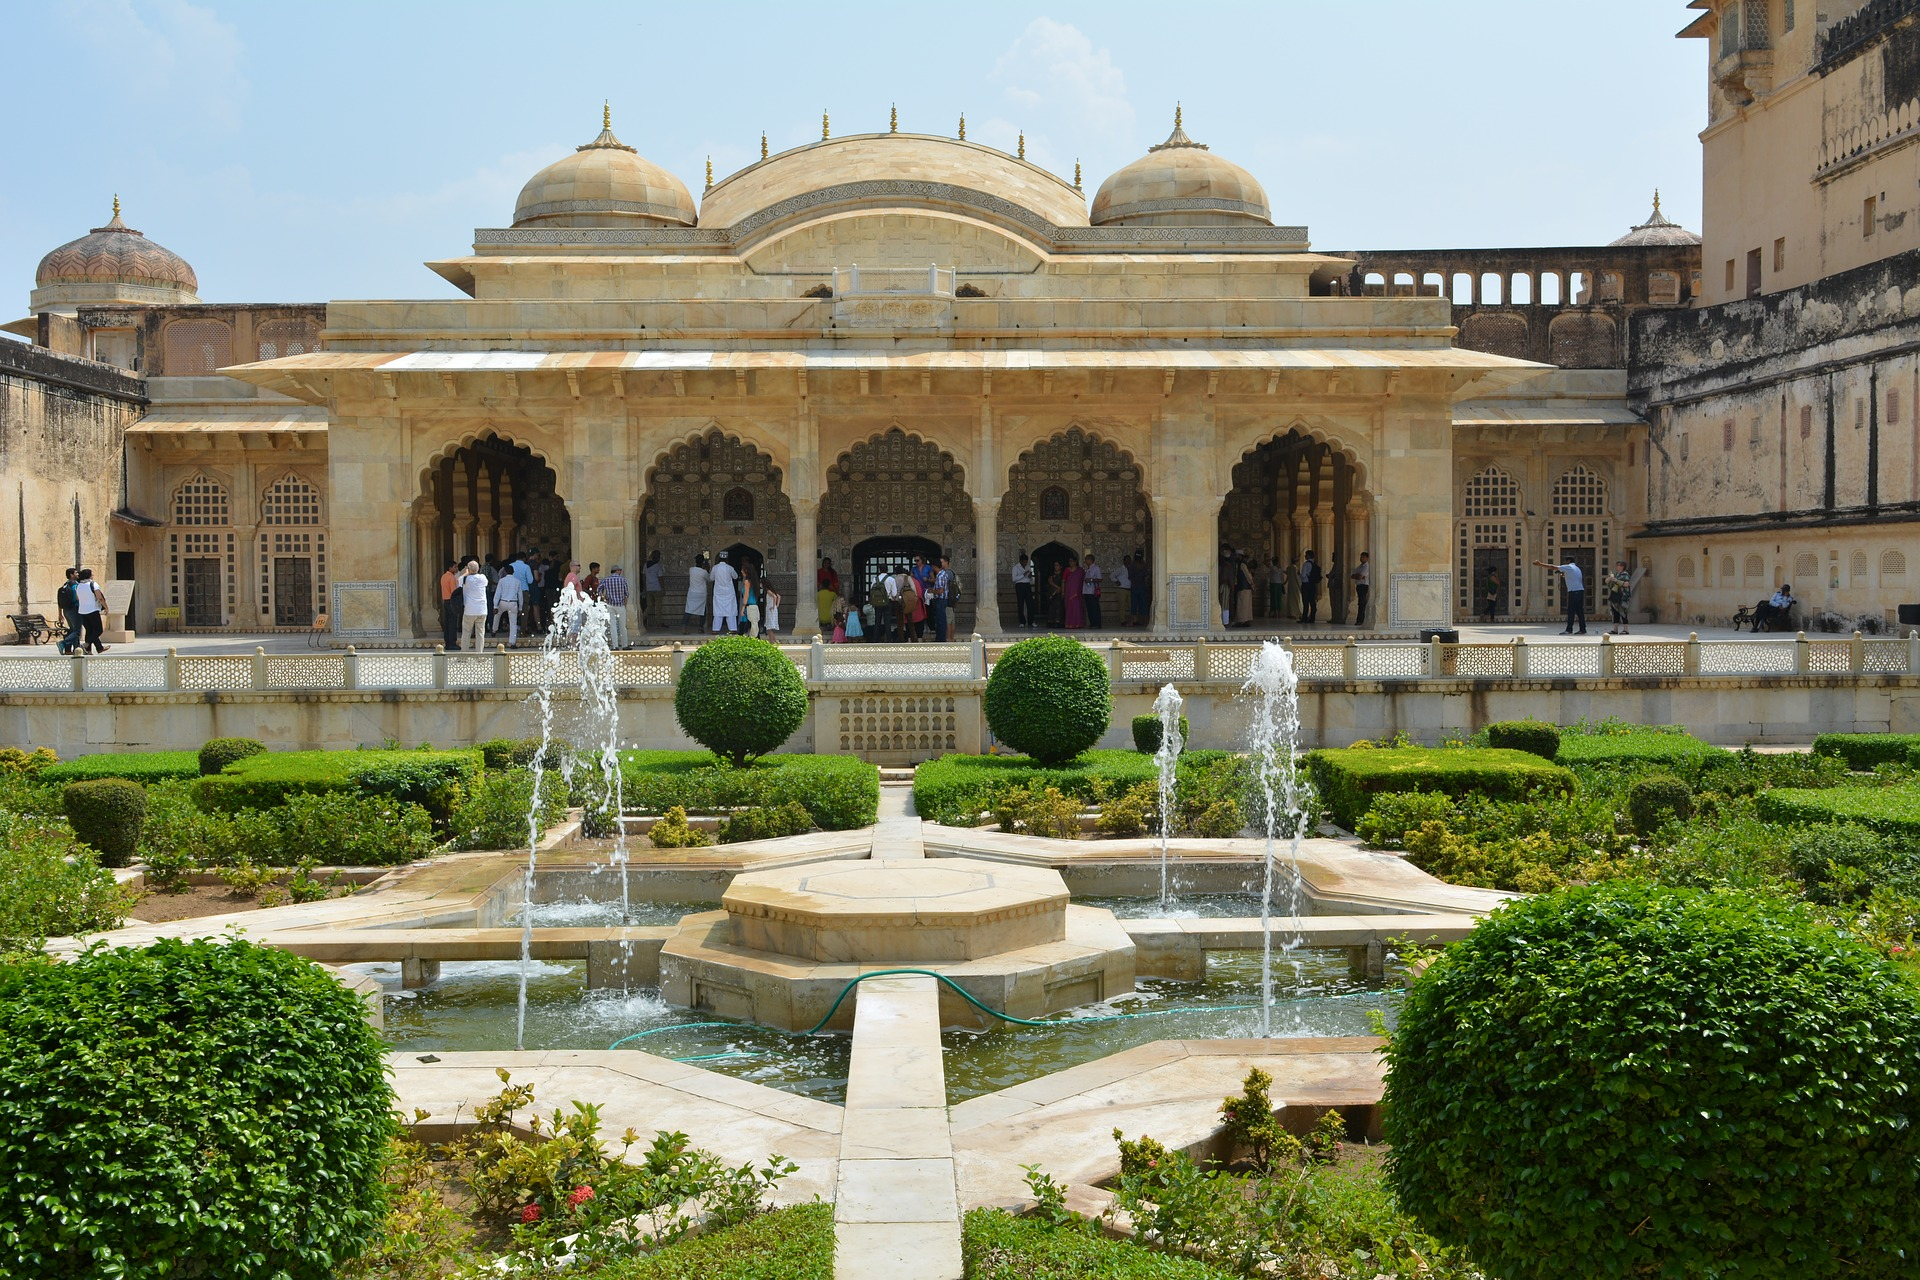 India's Royal Heritage - Amer Fort, India